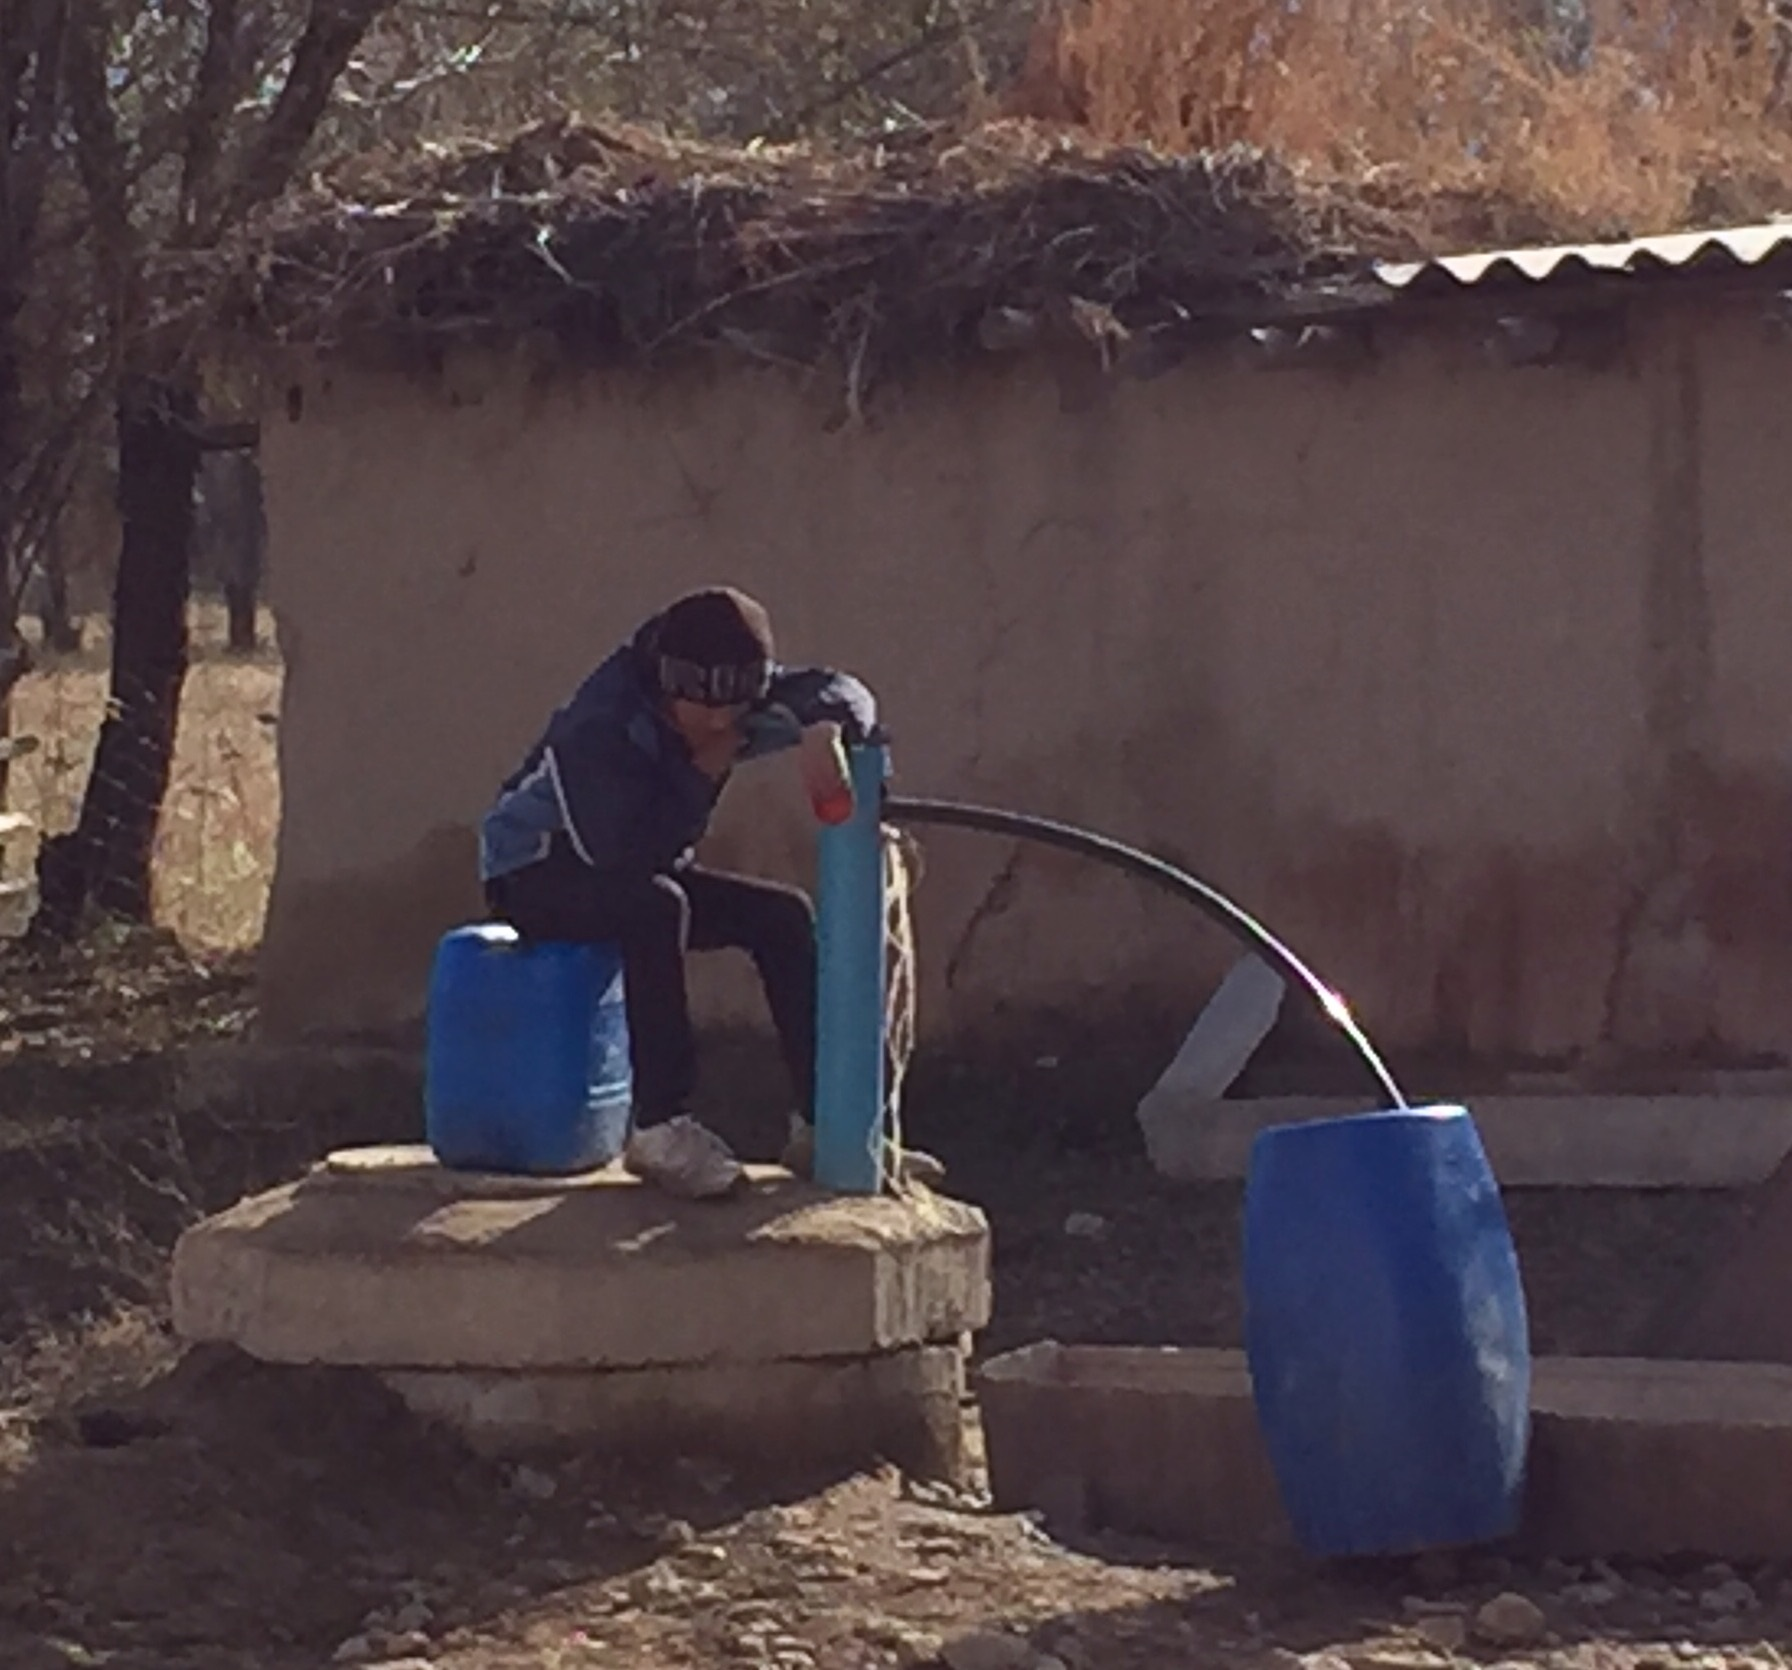 Boy filling water containers at a village well, upper Naryn Valley, November 2016 (source: B. Orlove)